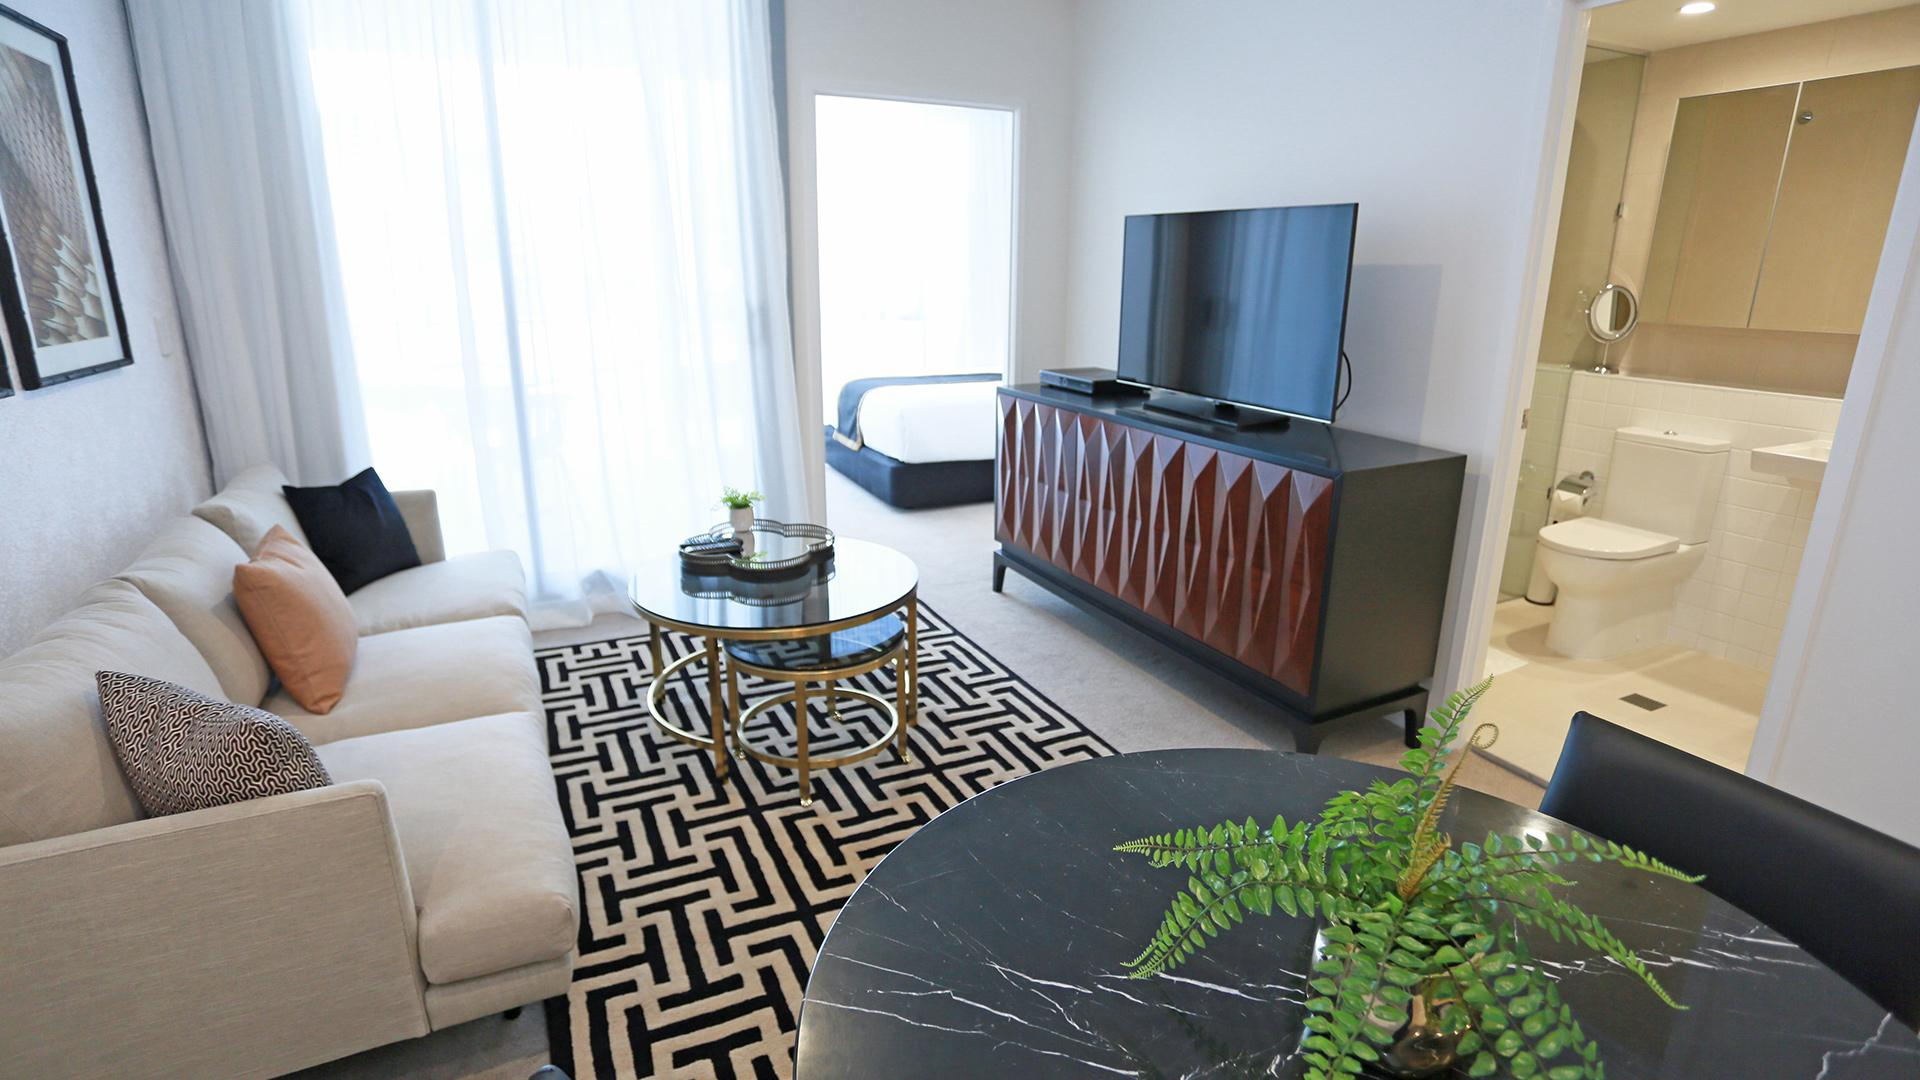 One Bedroom Executive Apartment image 1 at Alex Perry Hotel & Apartments by Brisbane City, Queensland, Australia